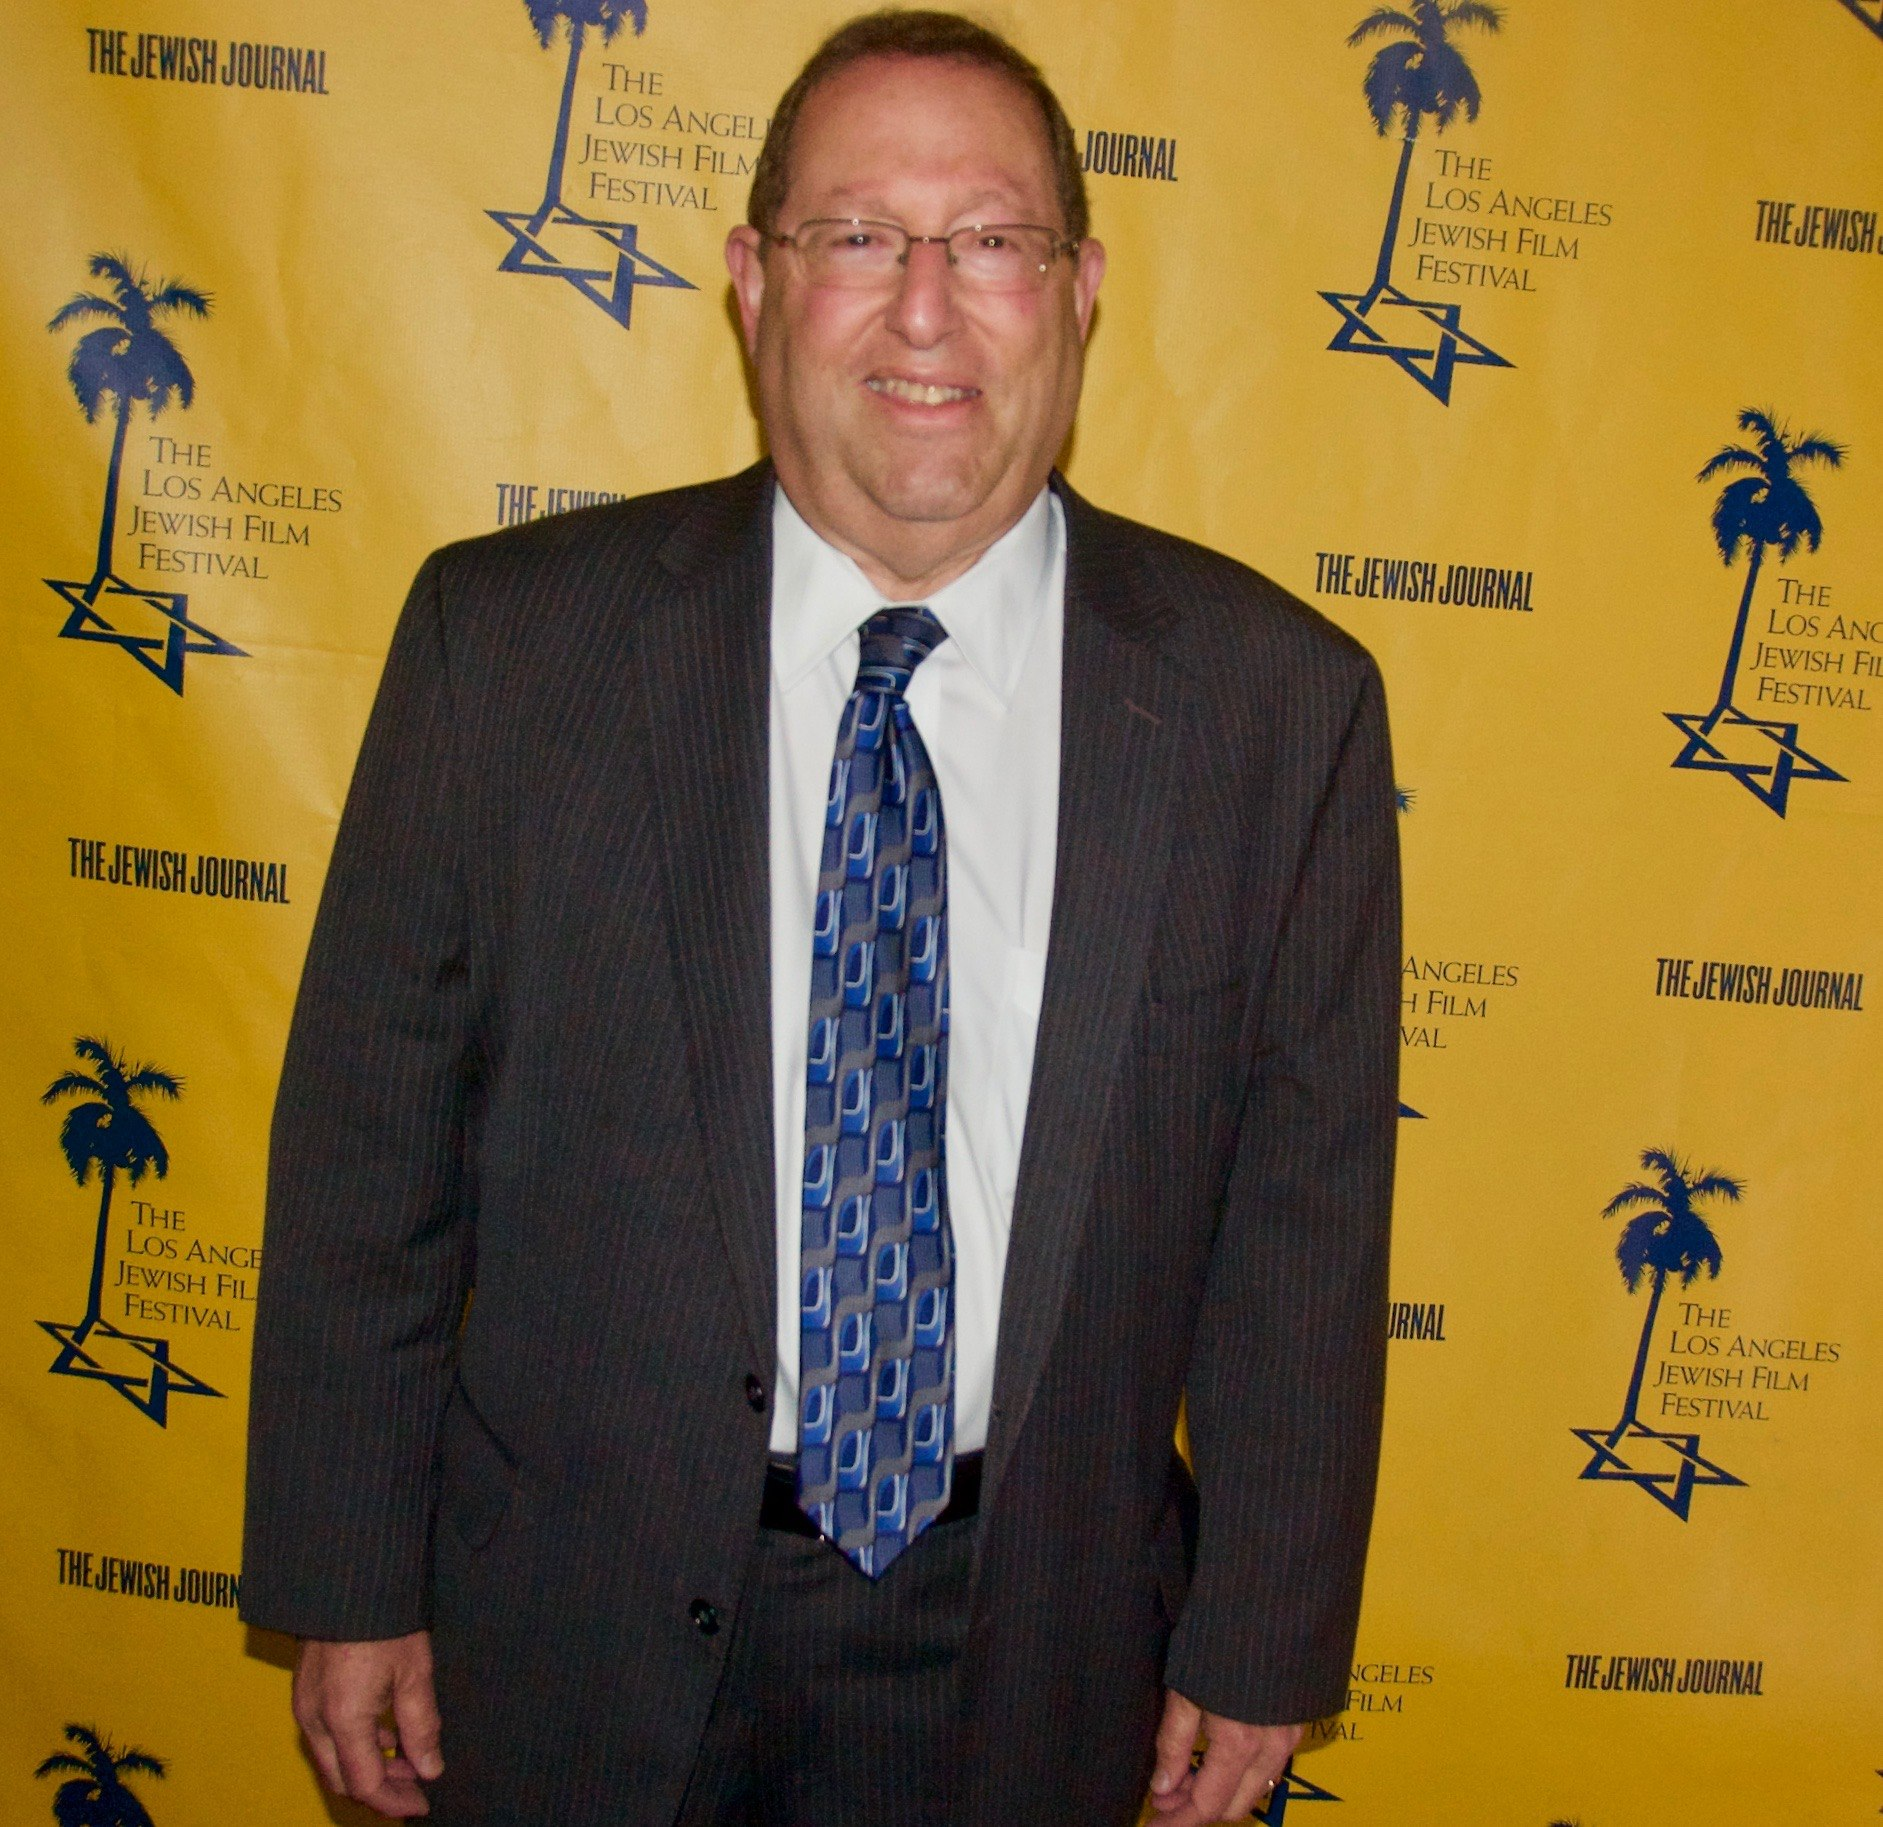 Paul Koretz on red carpet